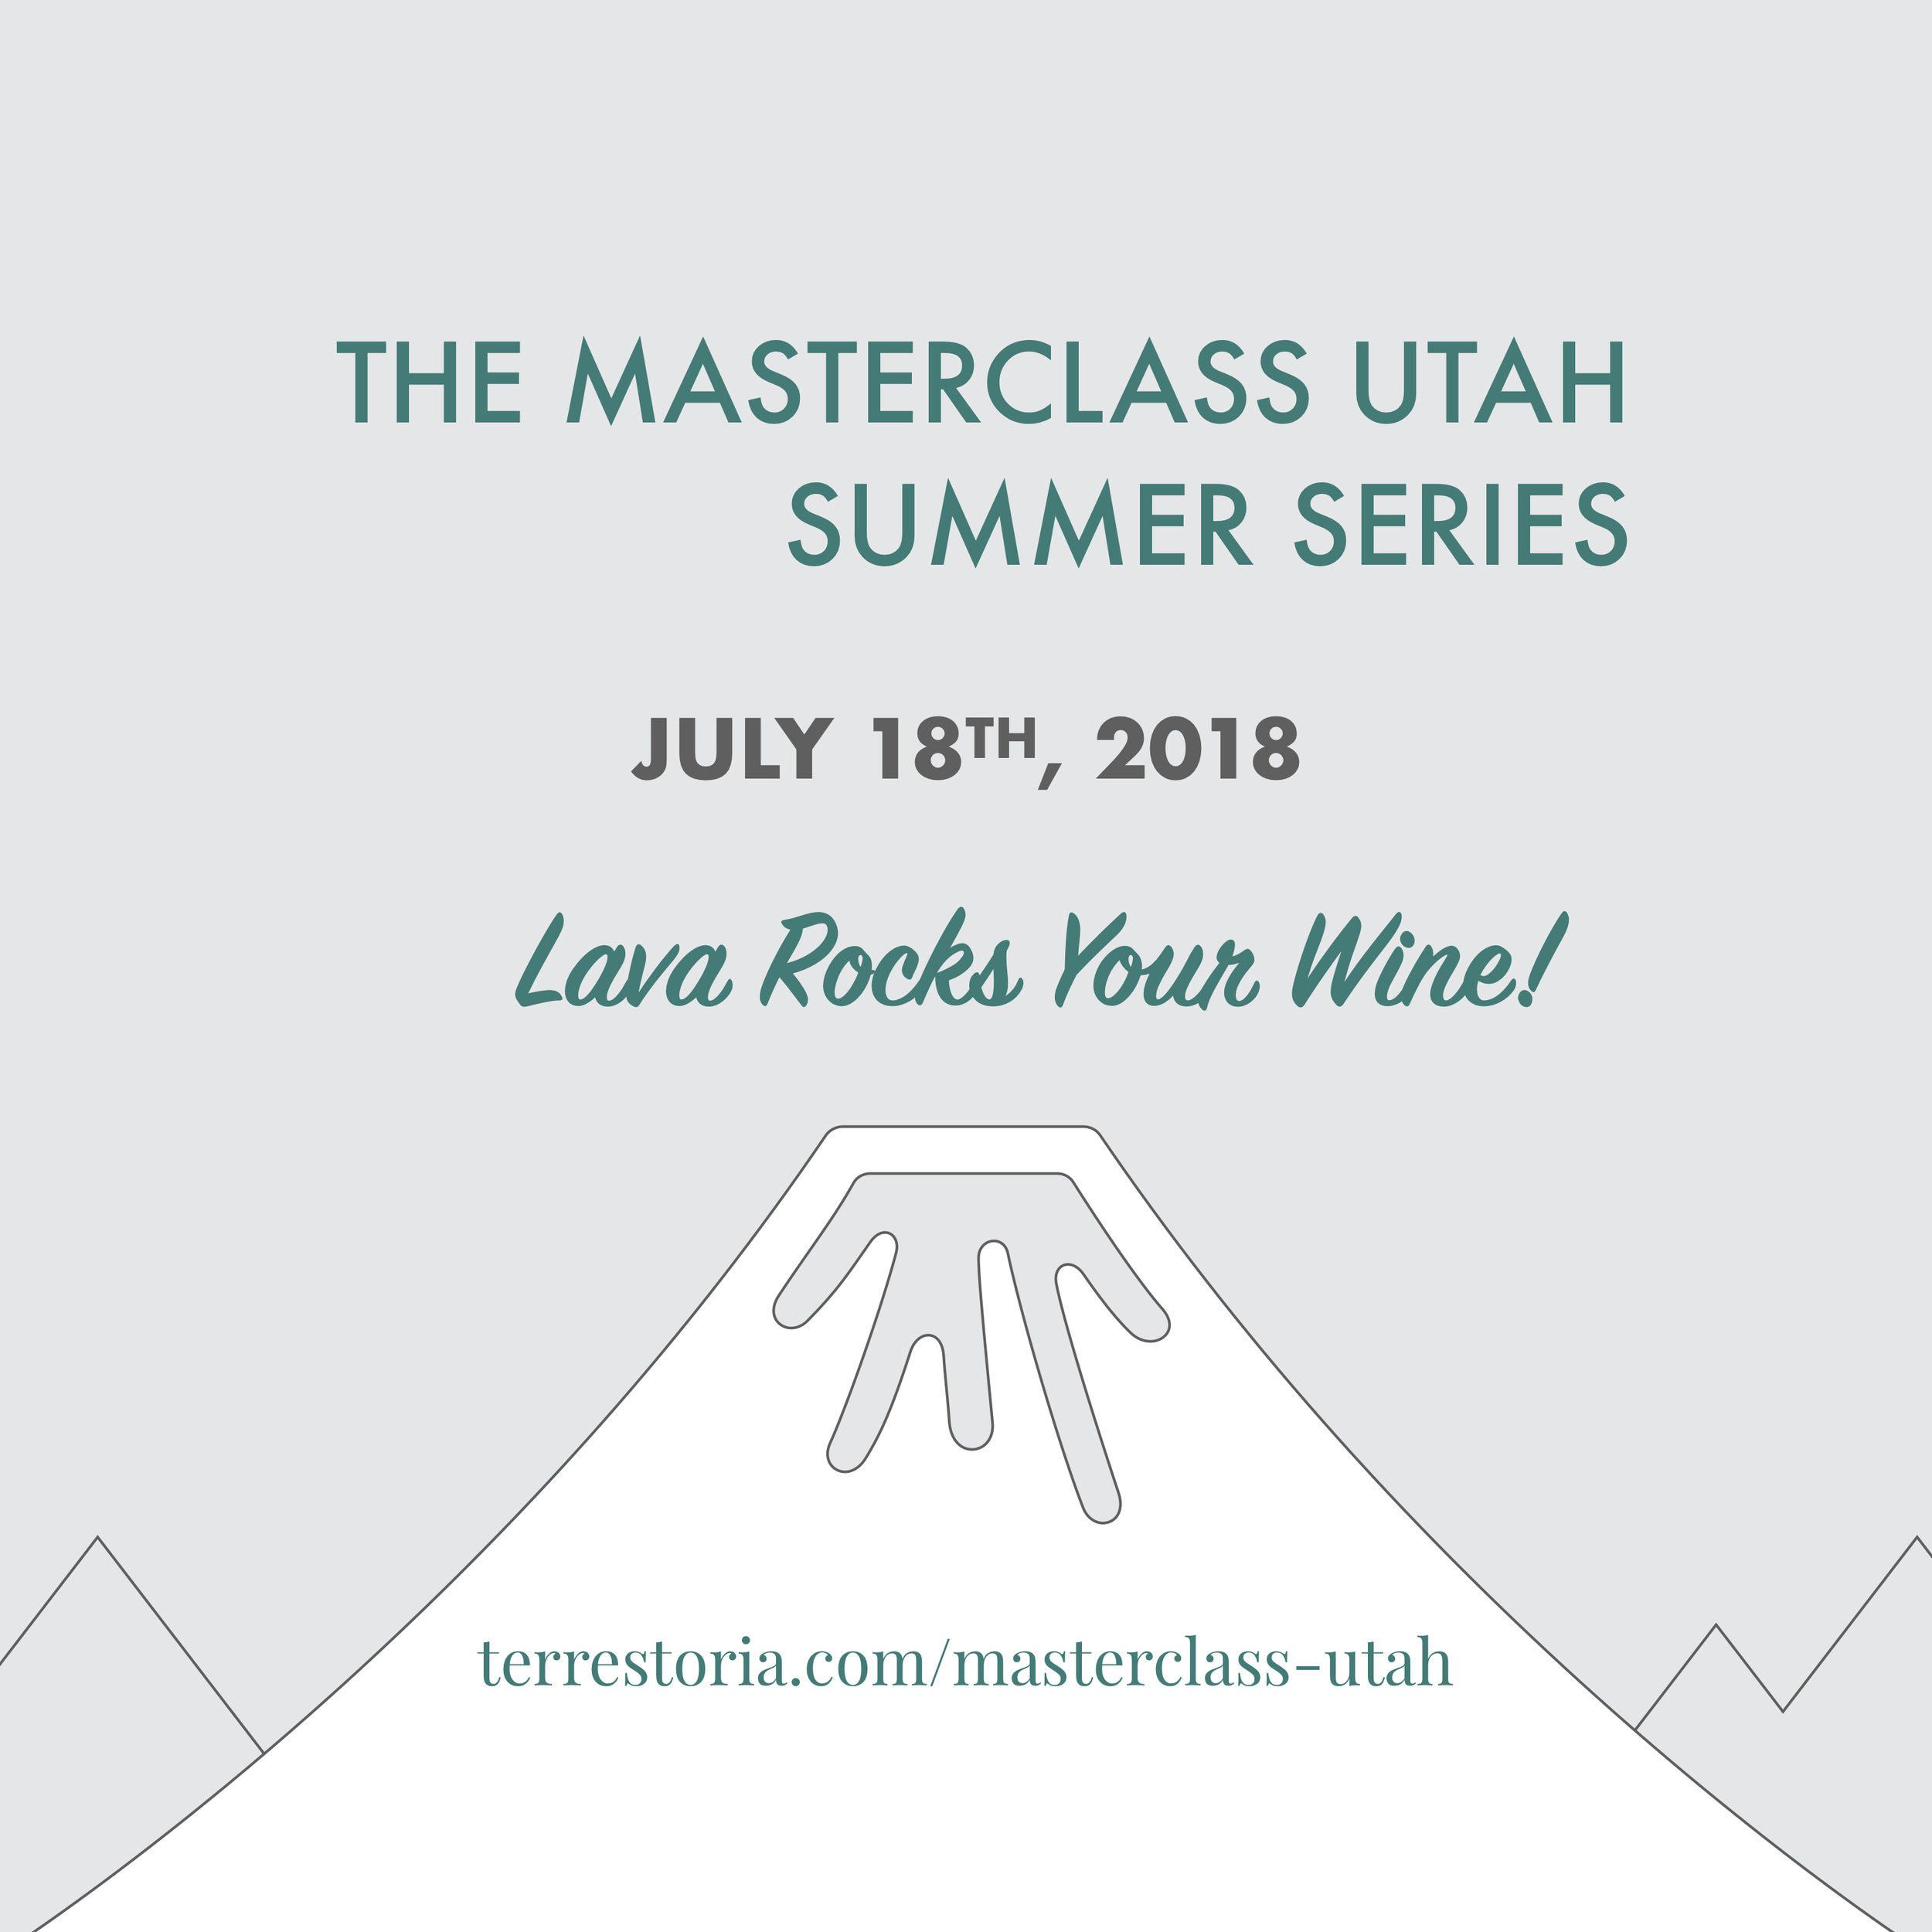 Masterclass Utah_lava-rocks-your-wine.jpg